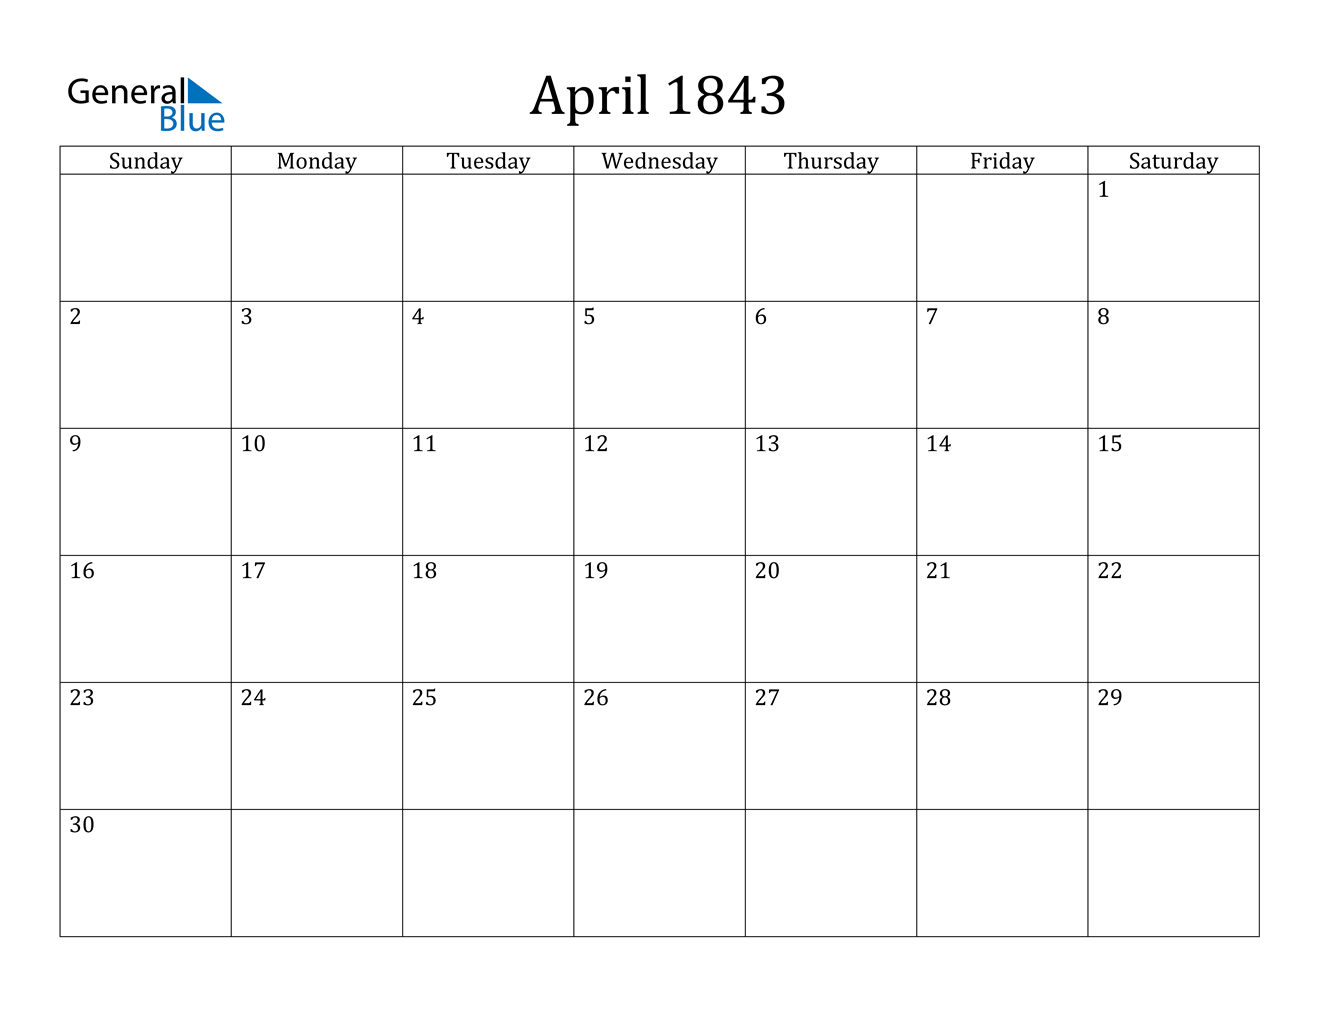 Image of April 1843 Calendar